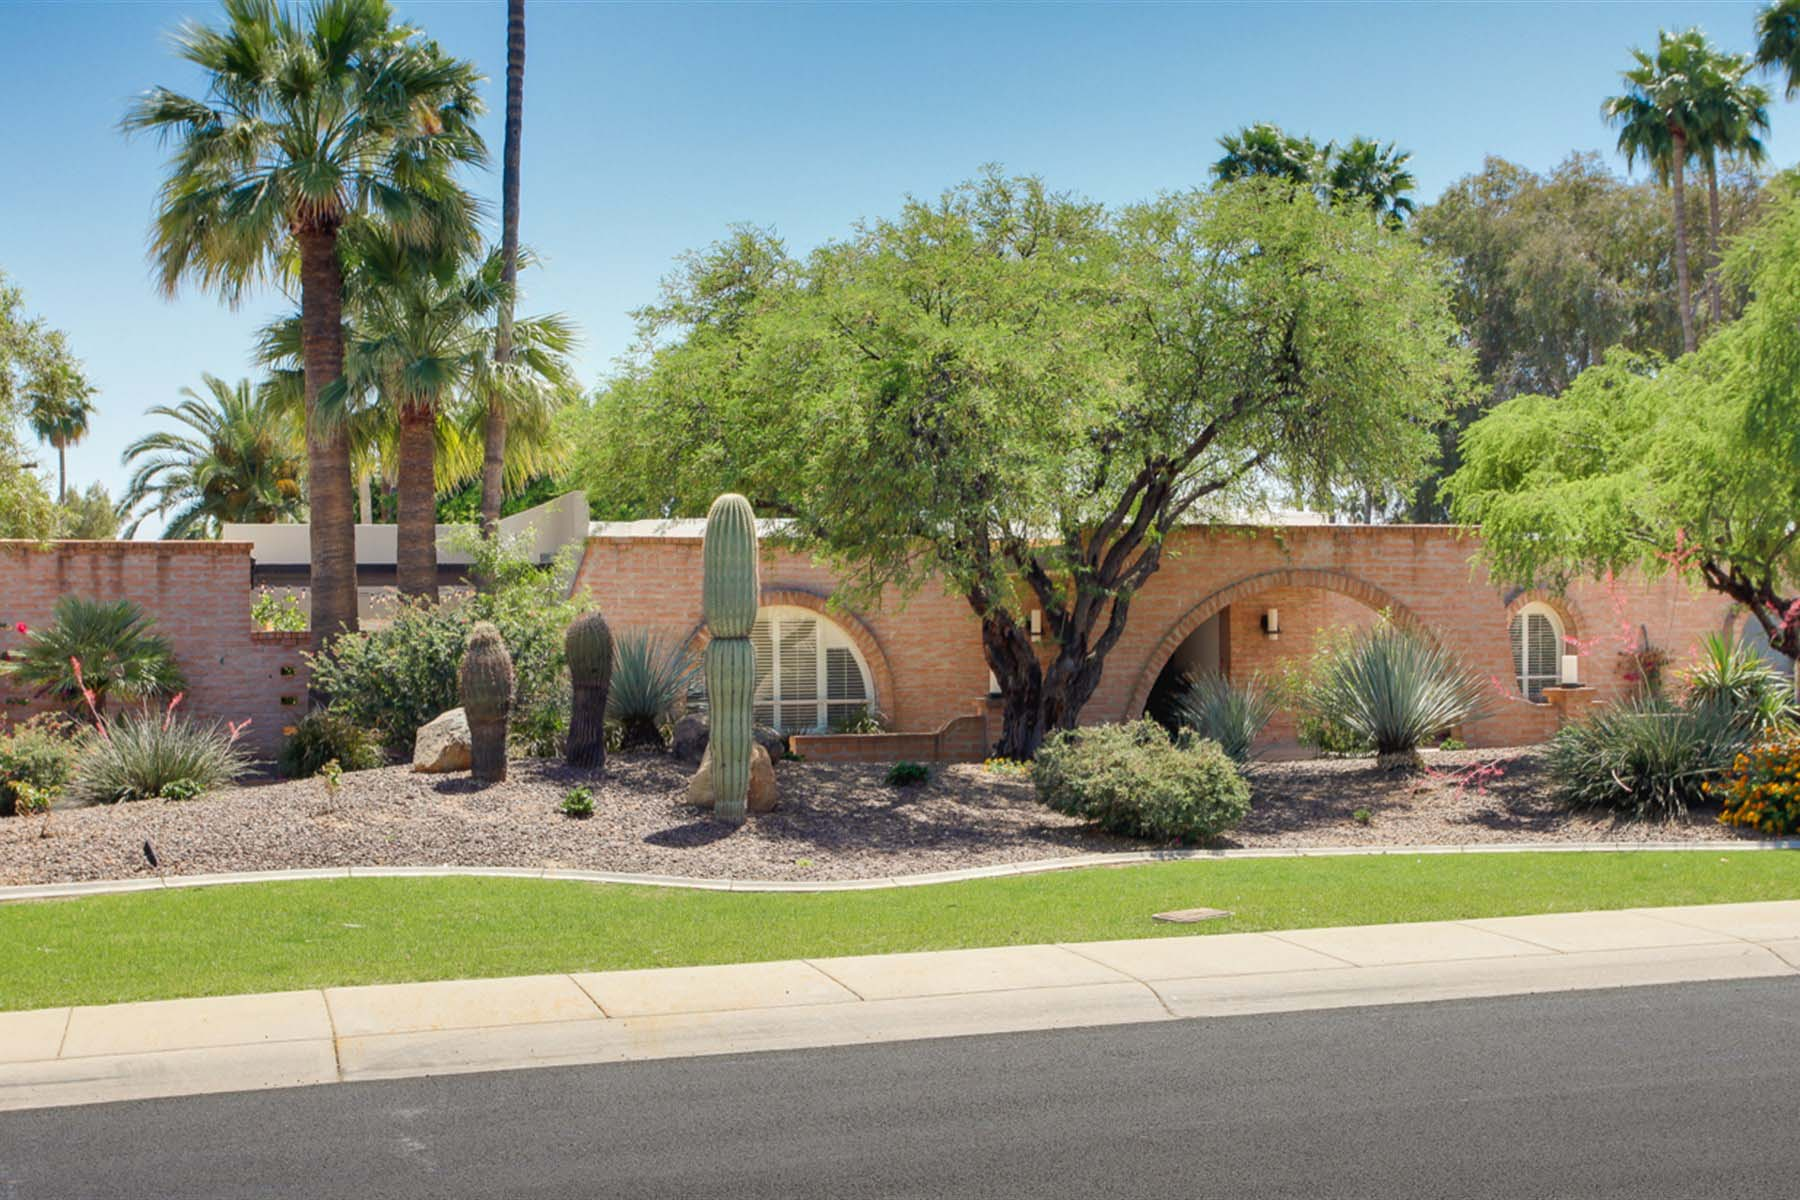 Single Family Home for Sale at Updated classic home is within the Arcadia umbrella of fine homes. 6245 E HILLCREST BLVD Scottsdale, Arizona 85251 United States